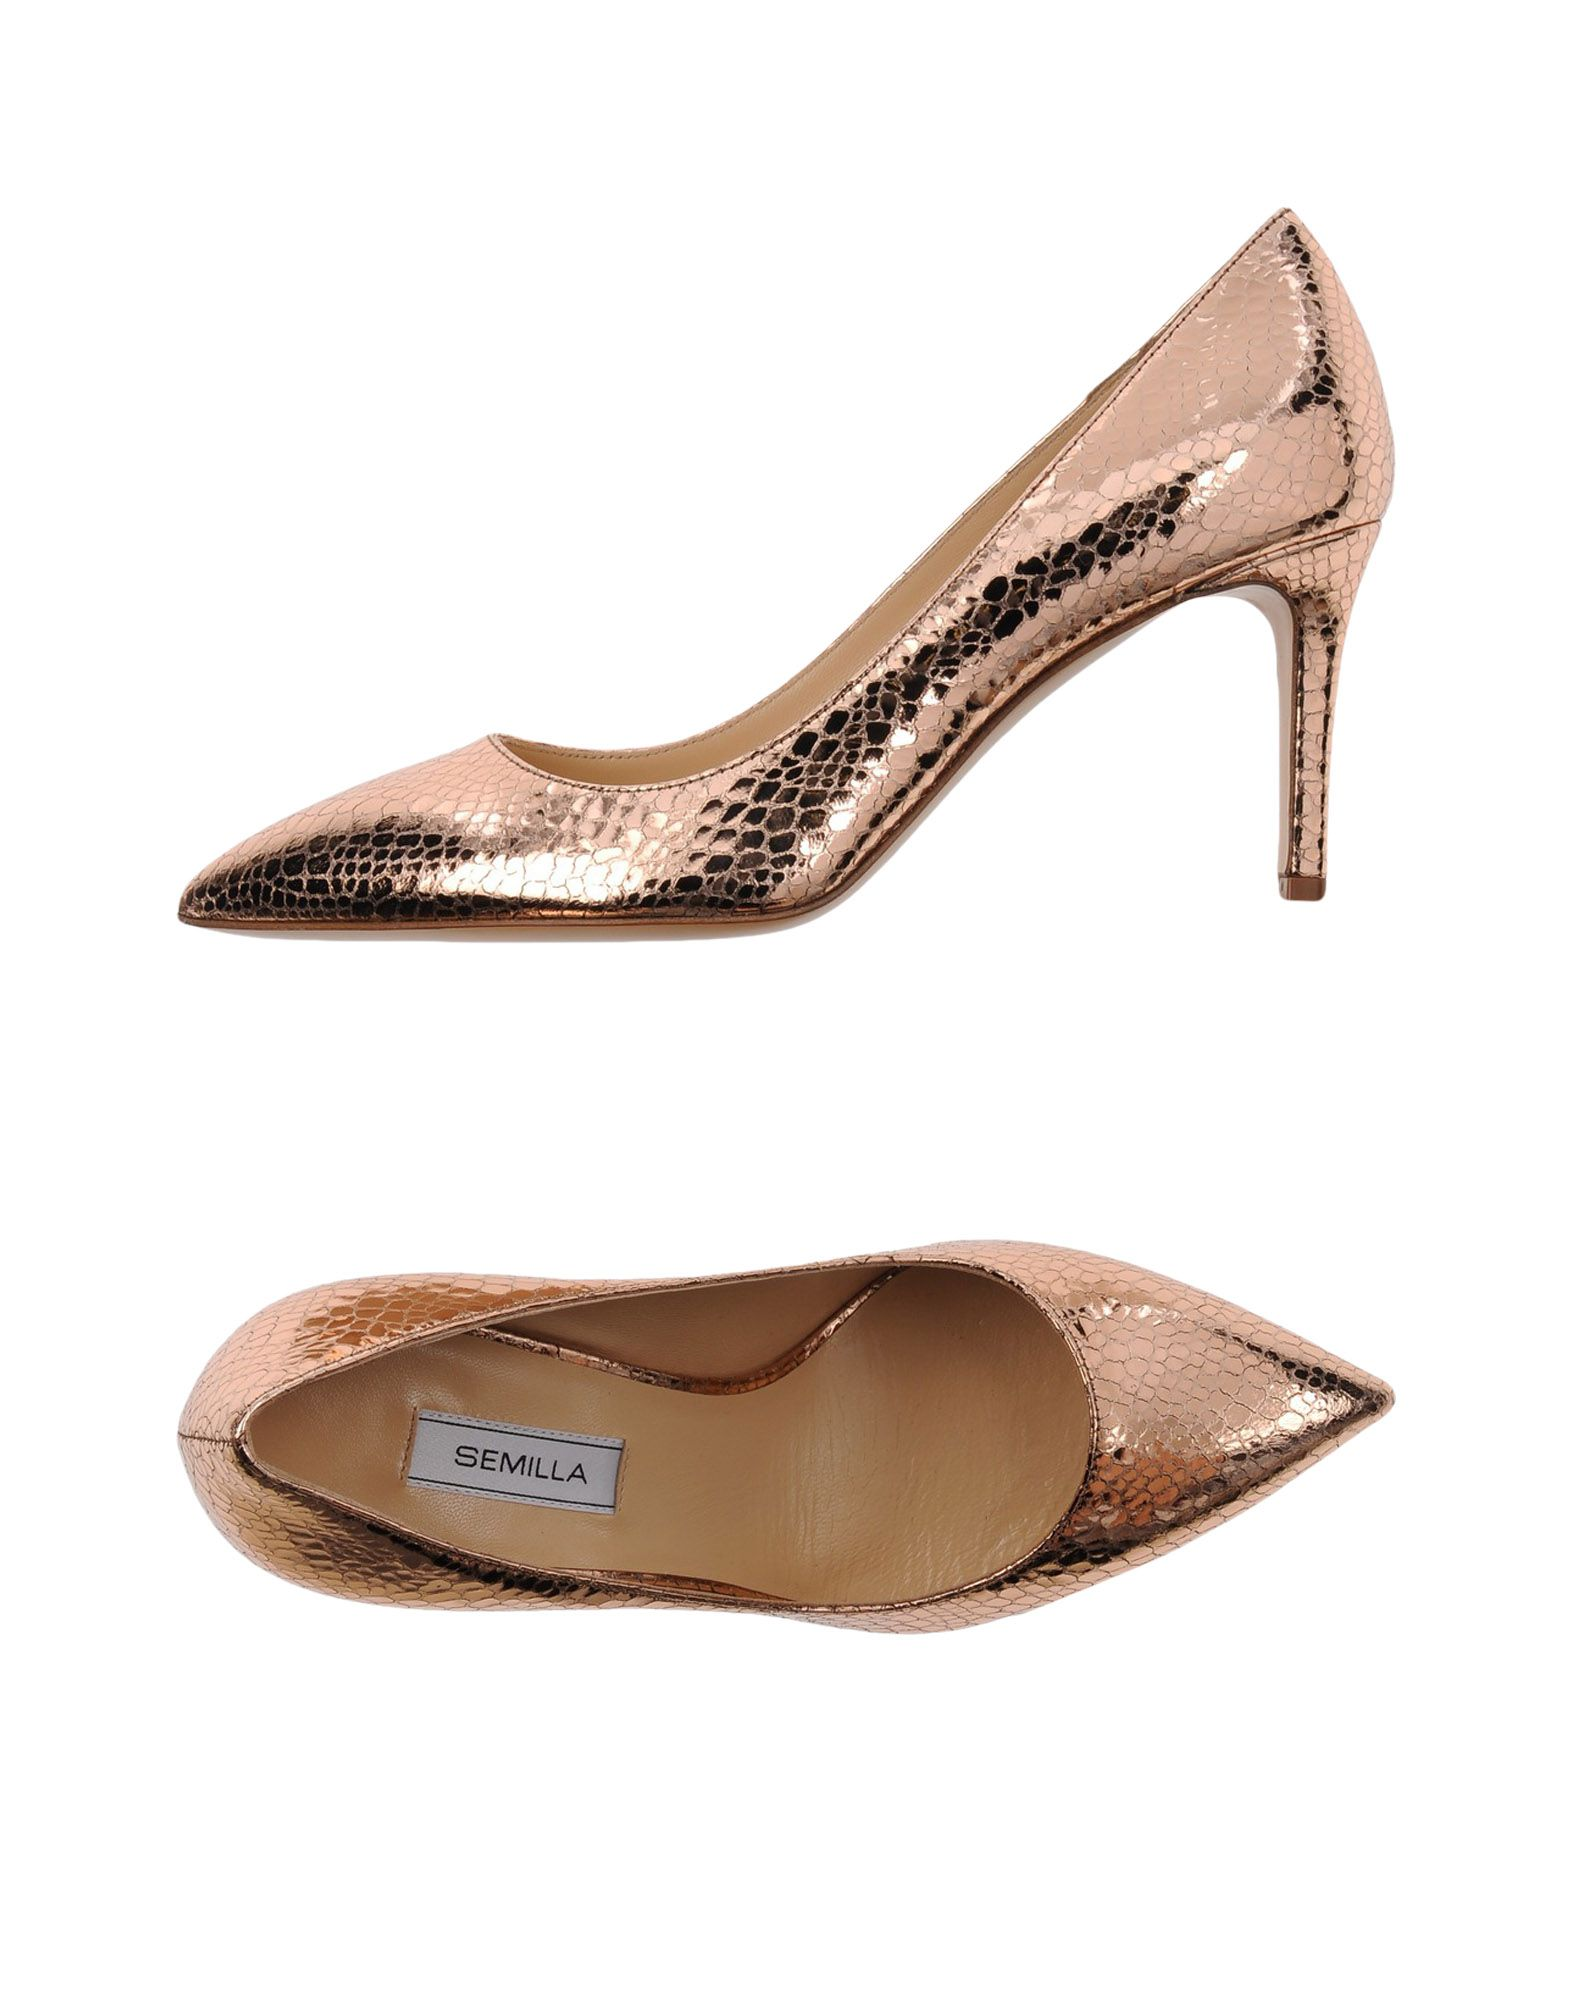 SEMILLA Pump in Copper